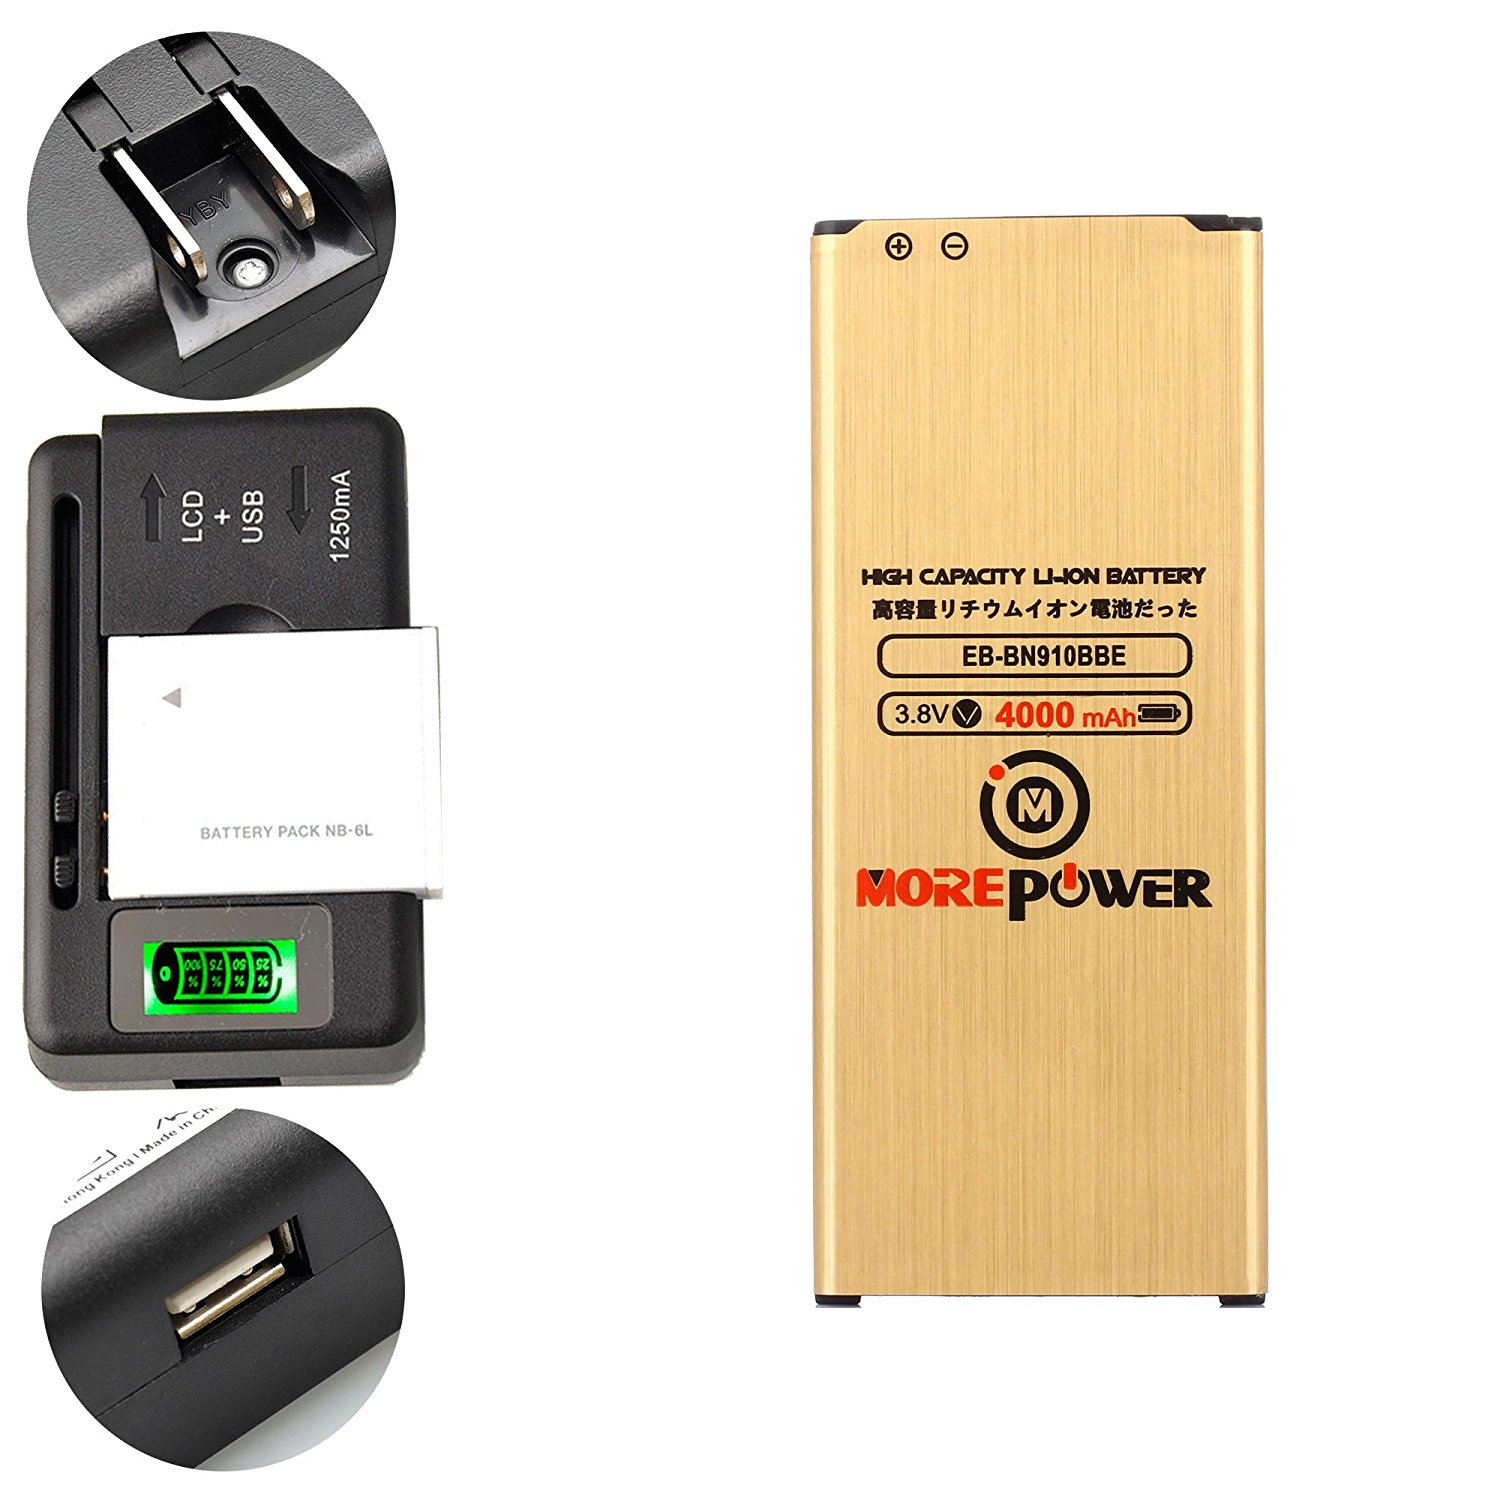 MOREPOWER Samsung Galaxy Note 4 Battery EB-BN910BBE EB-BN910BBU High Capacity & Long Lasting + Universal Battery Charger With LED Indicator 4000 mAh For Samsung Galaxy Note 4 SM-N910A / Samsung Galaxy Note 4 SM-N910T / Samsung Galaxy Note 4 SM-N910P / Samsung Galaxy Note 4 SM-N910R4 / Samsung